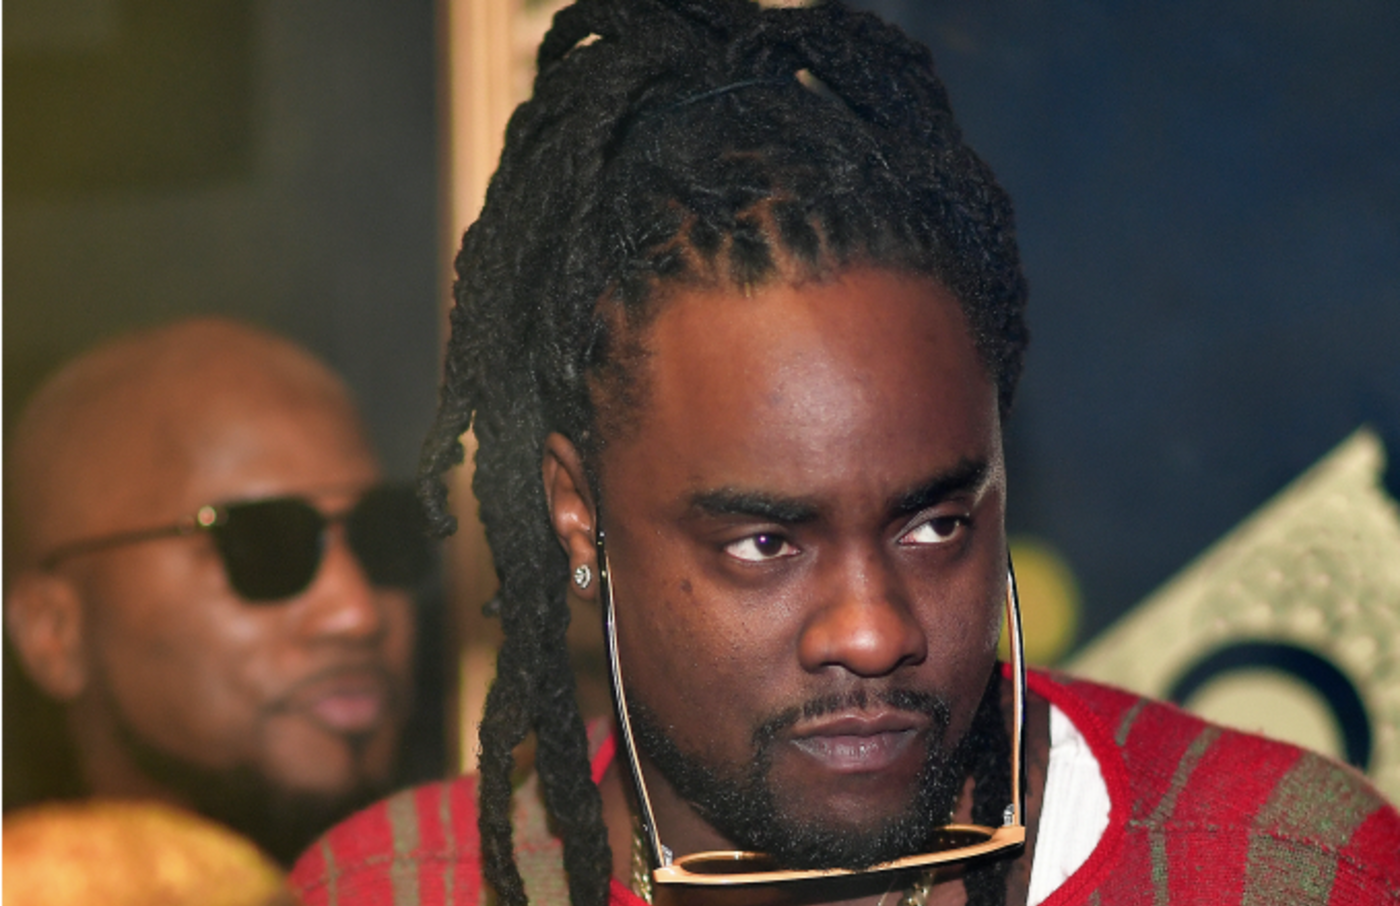 Rapper Wale attends Medusa Sunday Nights at Medusa